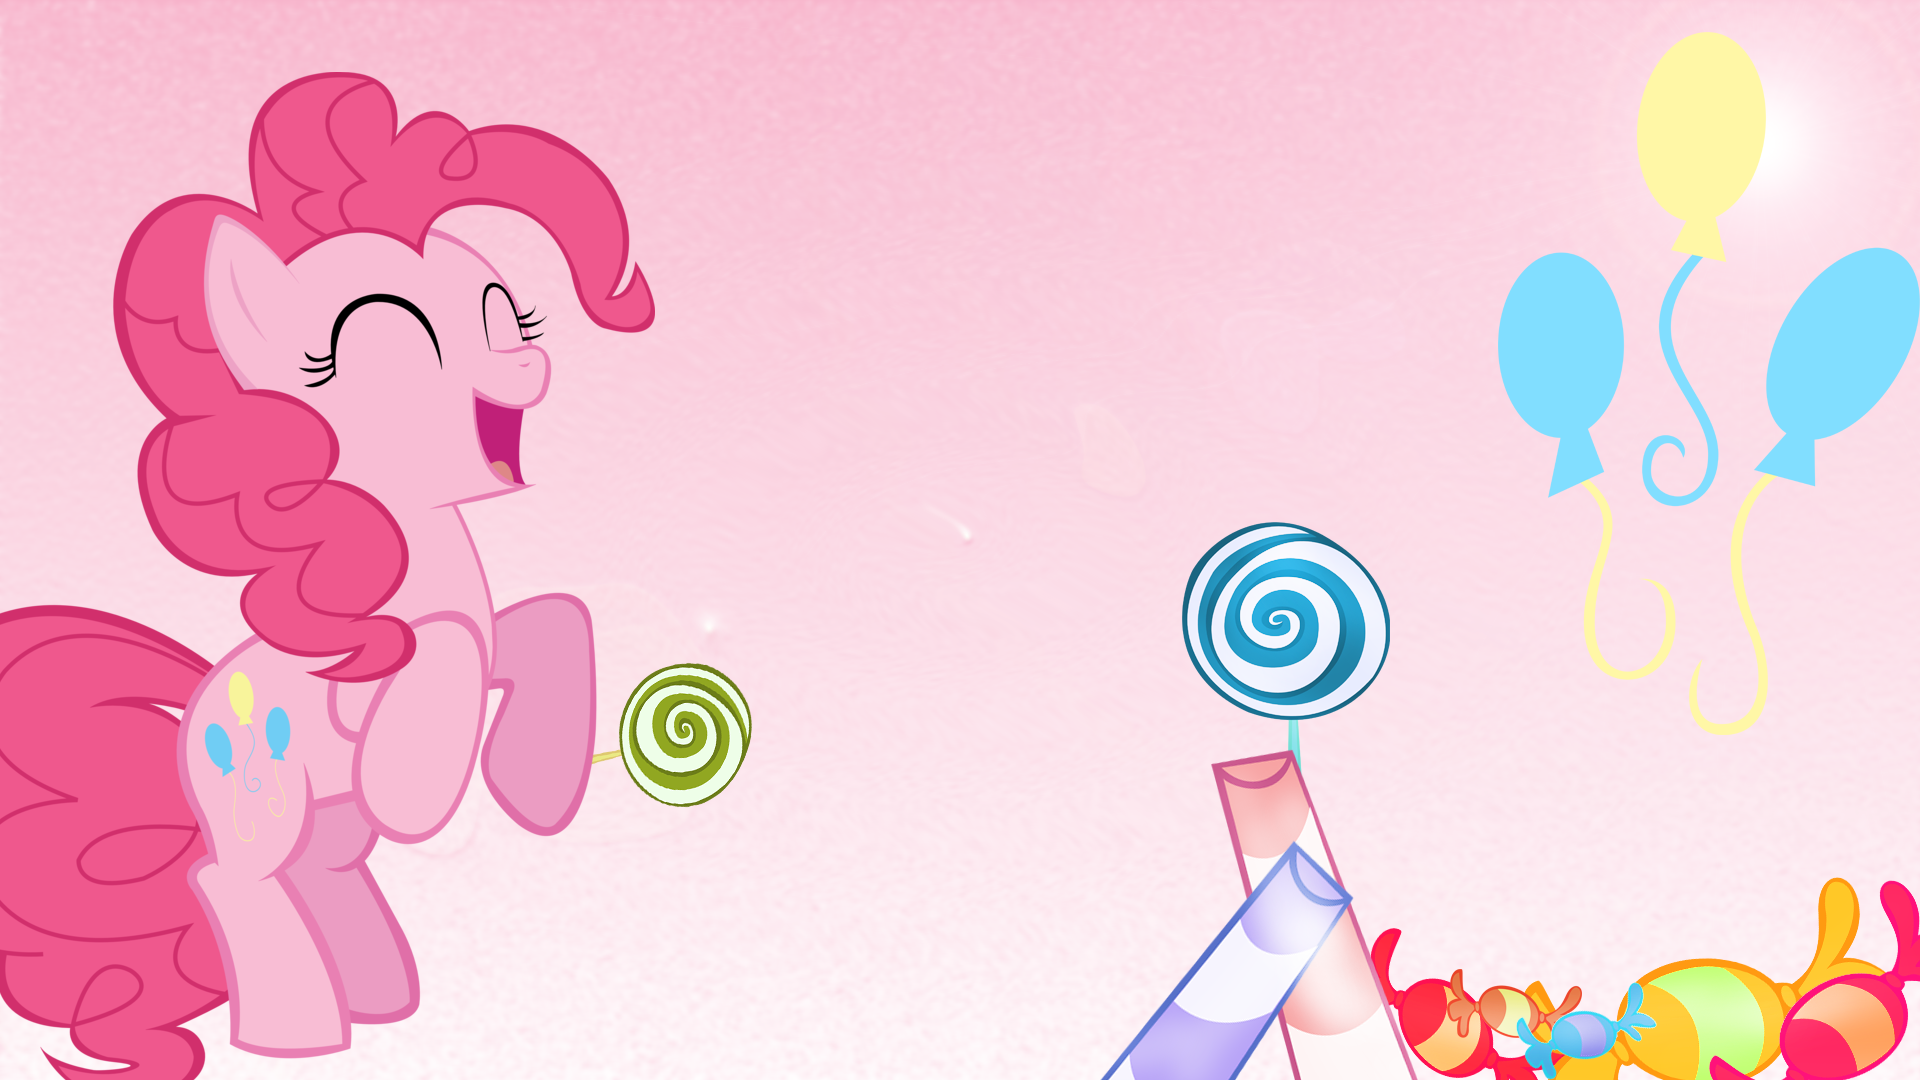 PARTY - Wallpaper by Chessie2003, GrugDude, GuruGrendo and Peachspices